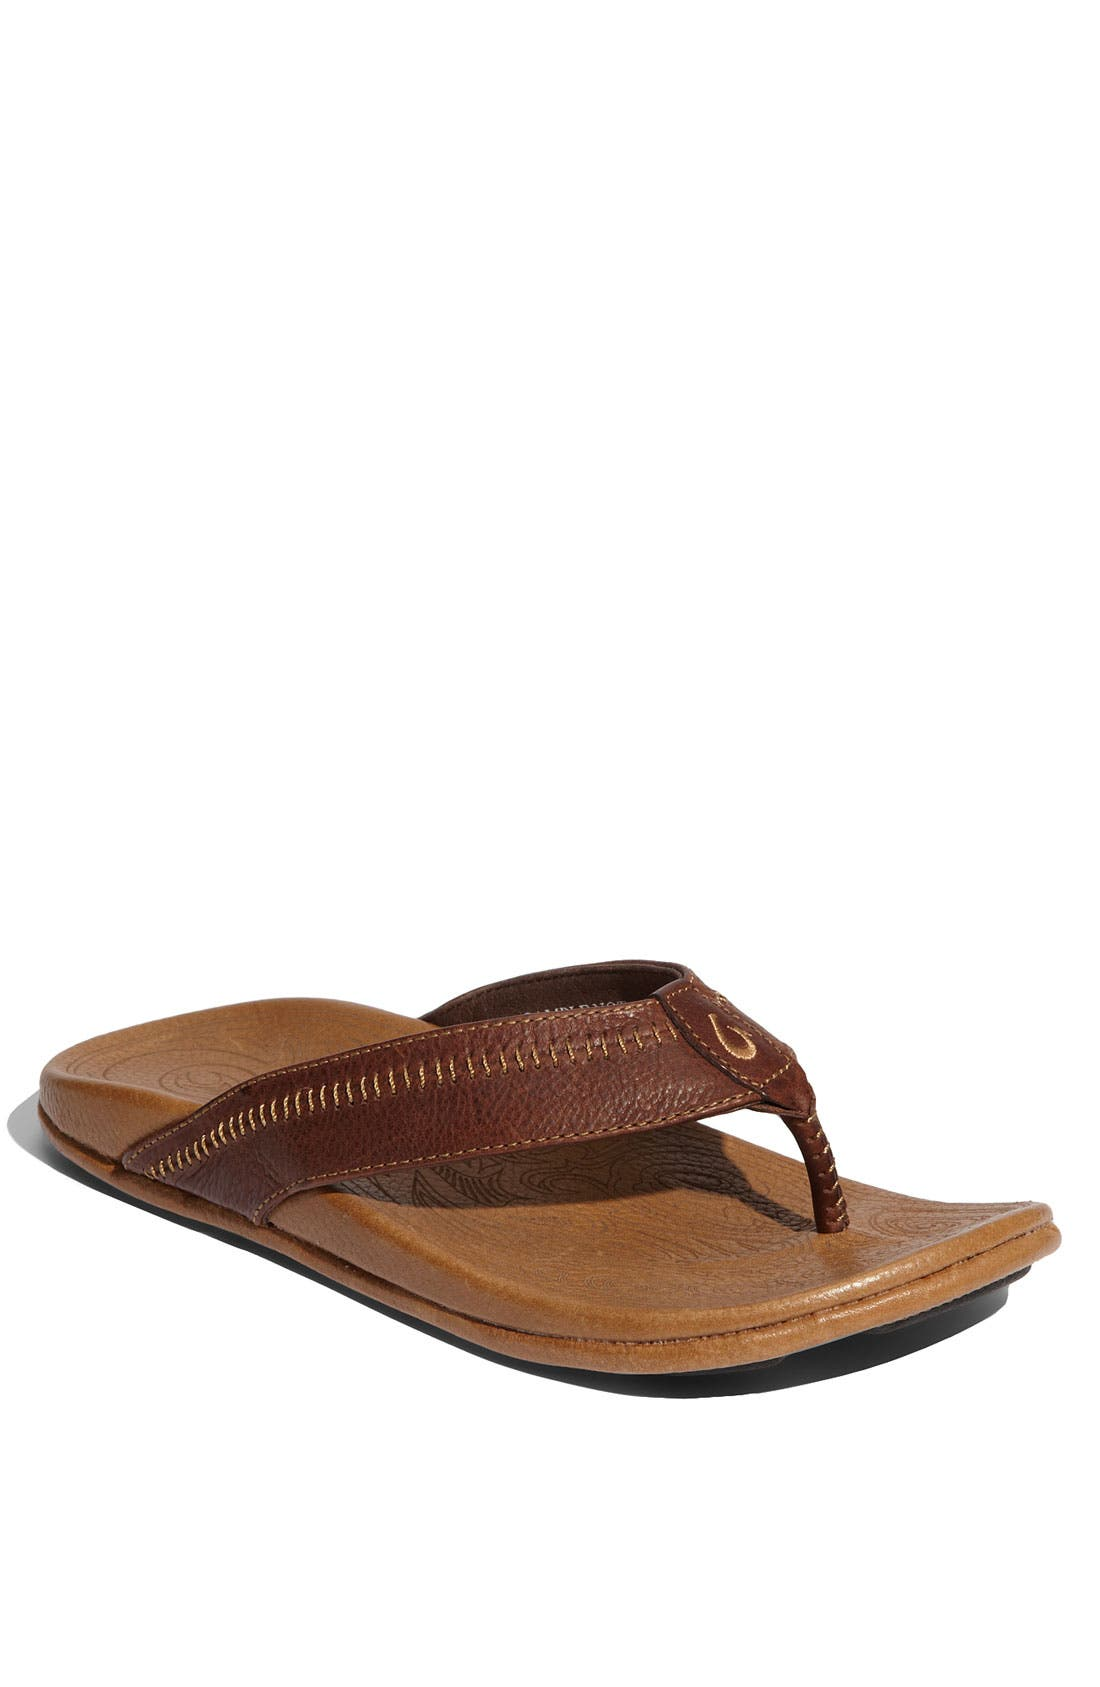 'Hiapo' Flip Flop,                             Main thumbnail 1, color,                             DARK JAVA TOFFEE